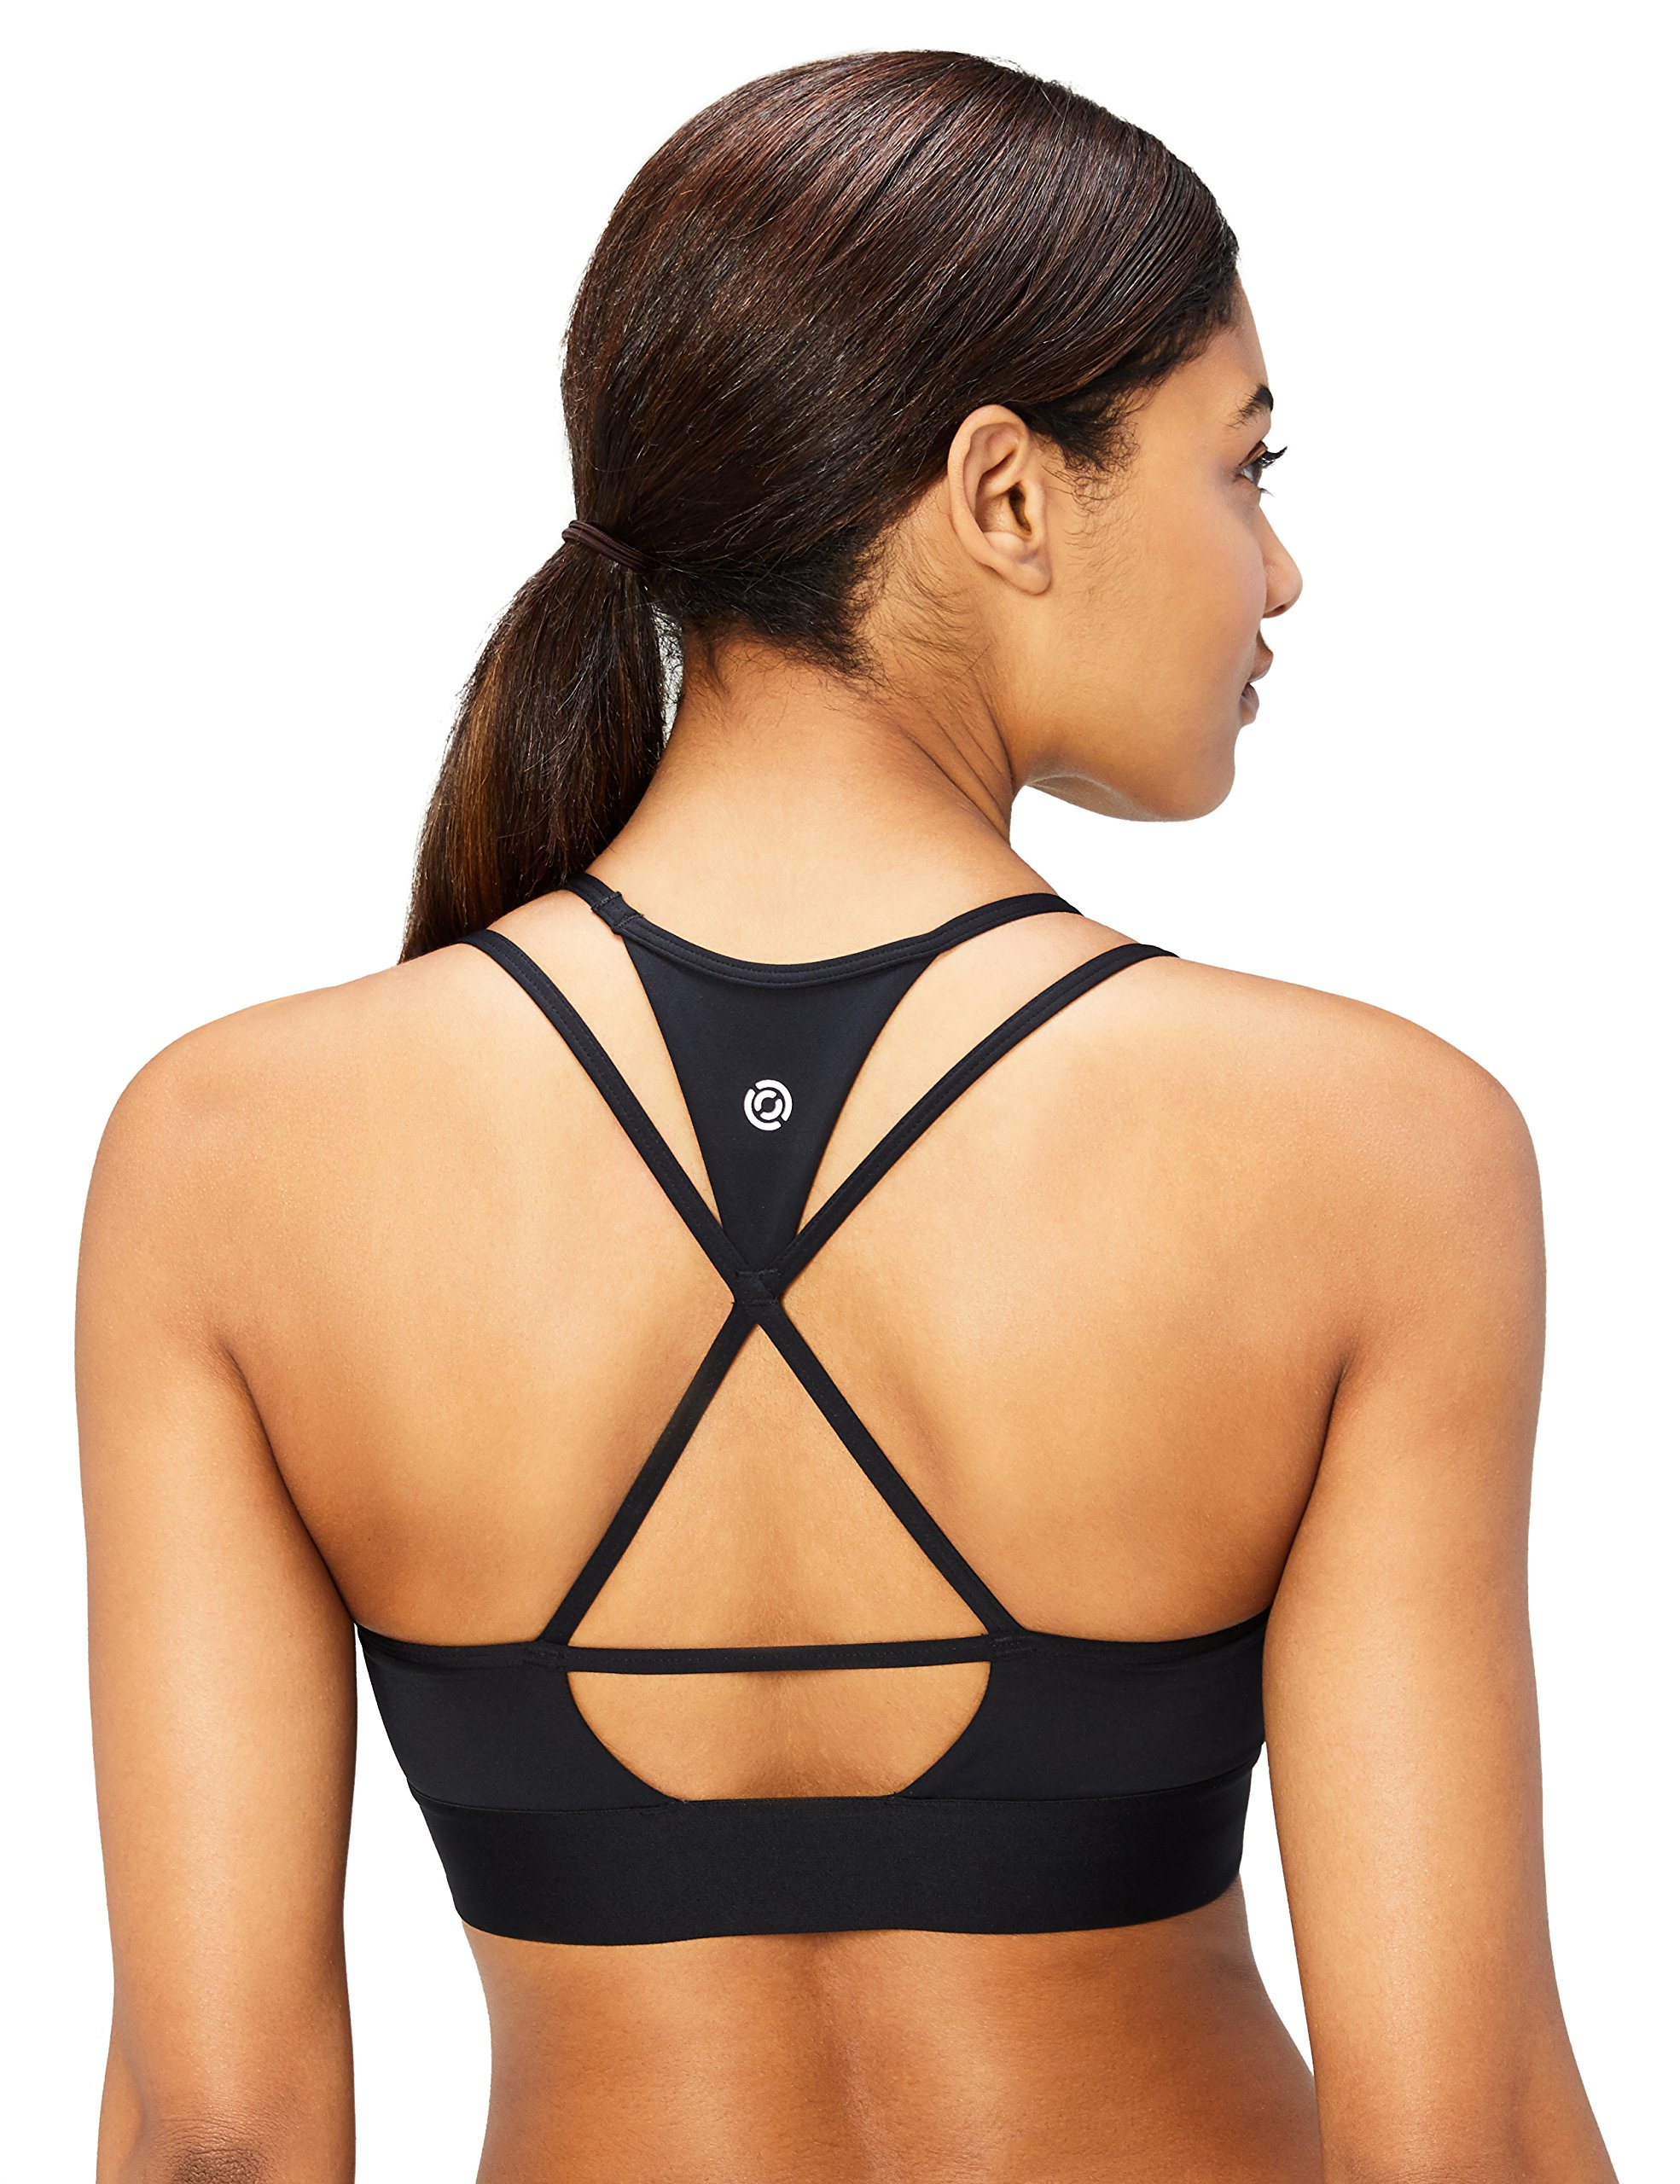 XS-3X All Around Sports Bra Cross-Back Featuring Strappy T-Back Designs Brand Core 10 Womens